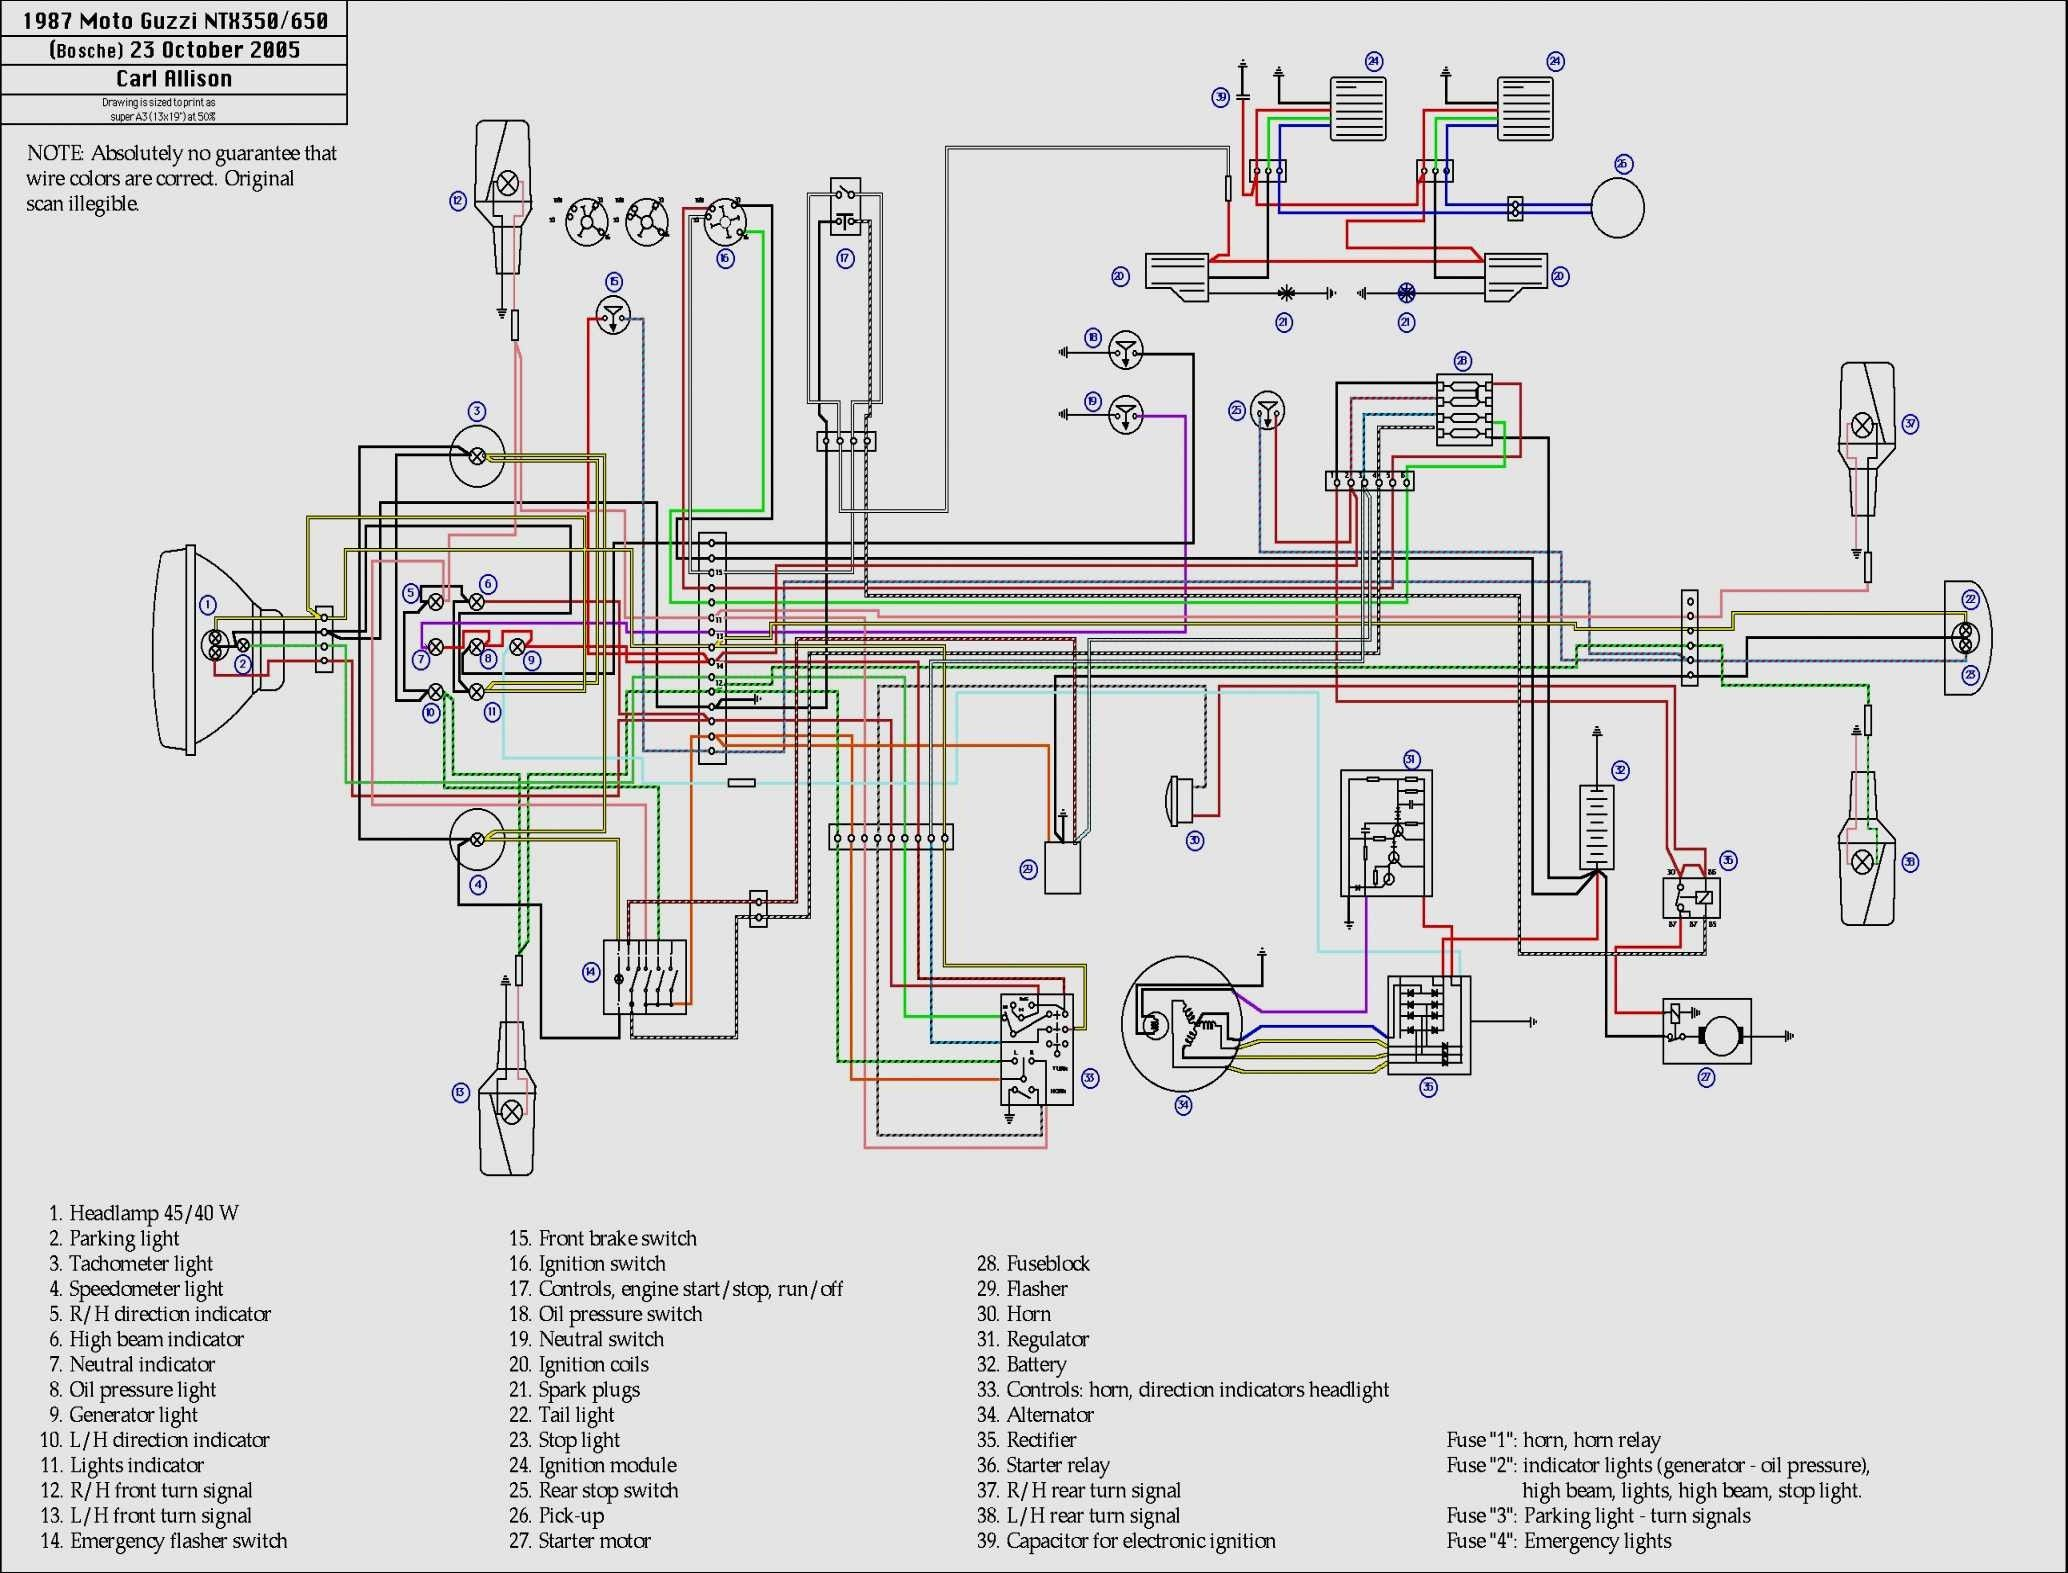 DIAGRAM] Z Star Atv Wiring Diagram FULL Version HD Quality Wiring Diagram -  OHIOELECTRICMOTOR.BCCALTABRIANZA.ITWiring Diagram - Bccaltabrianza